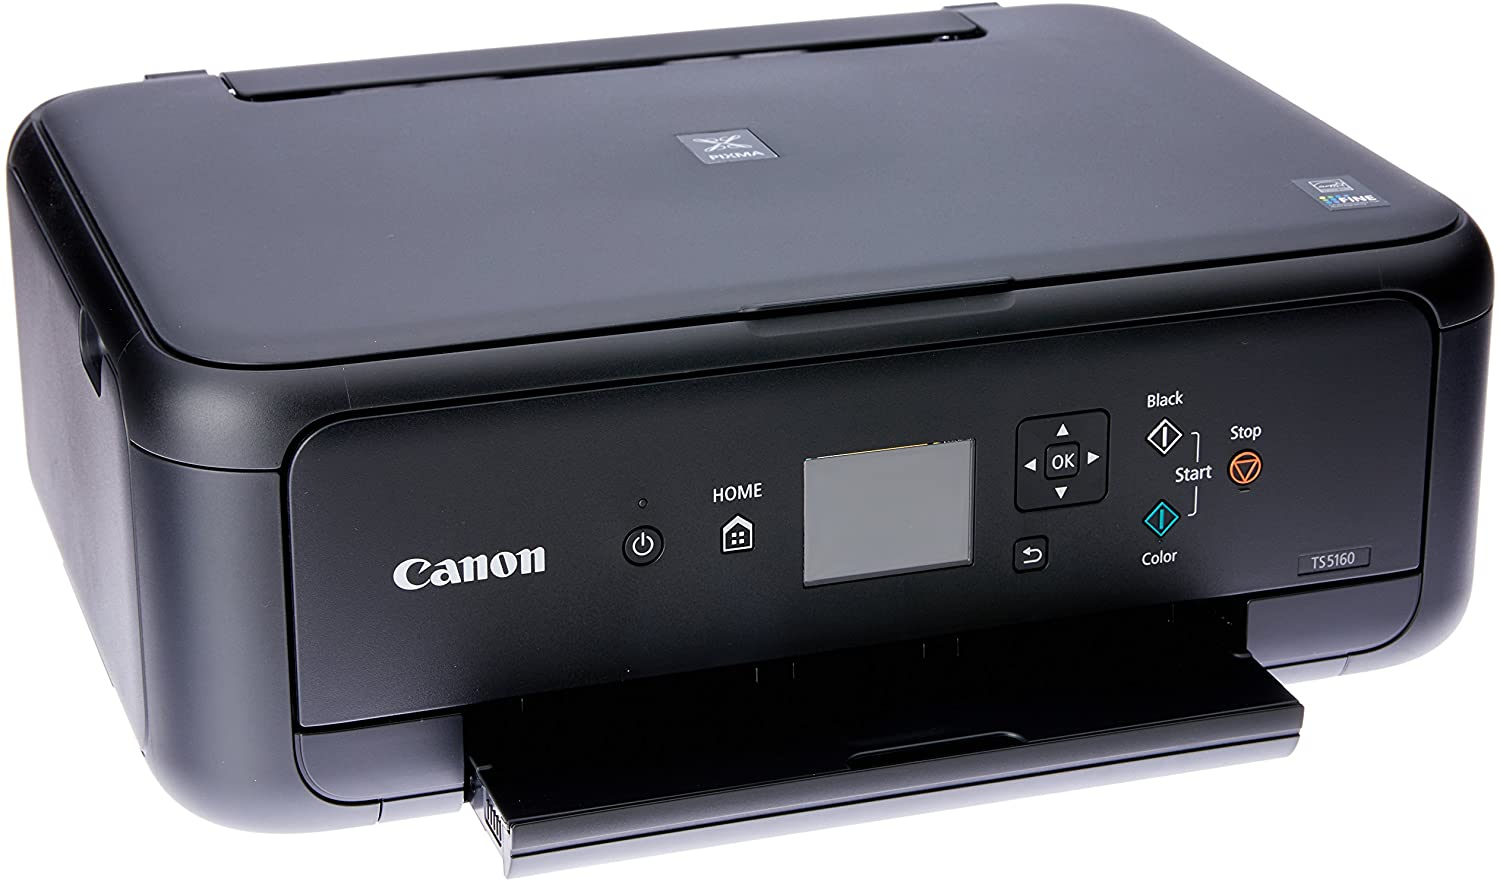 Canon PIXMA Home TS5160 Printer Office Product, TS5160BK $69.00 was $99.00  @ Amazon